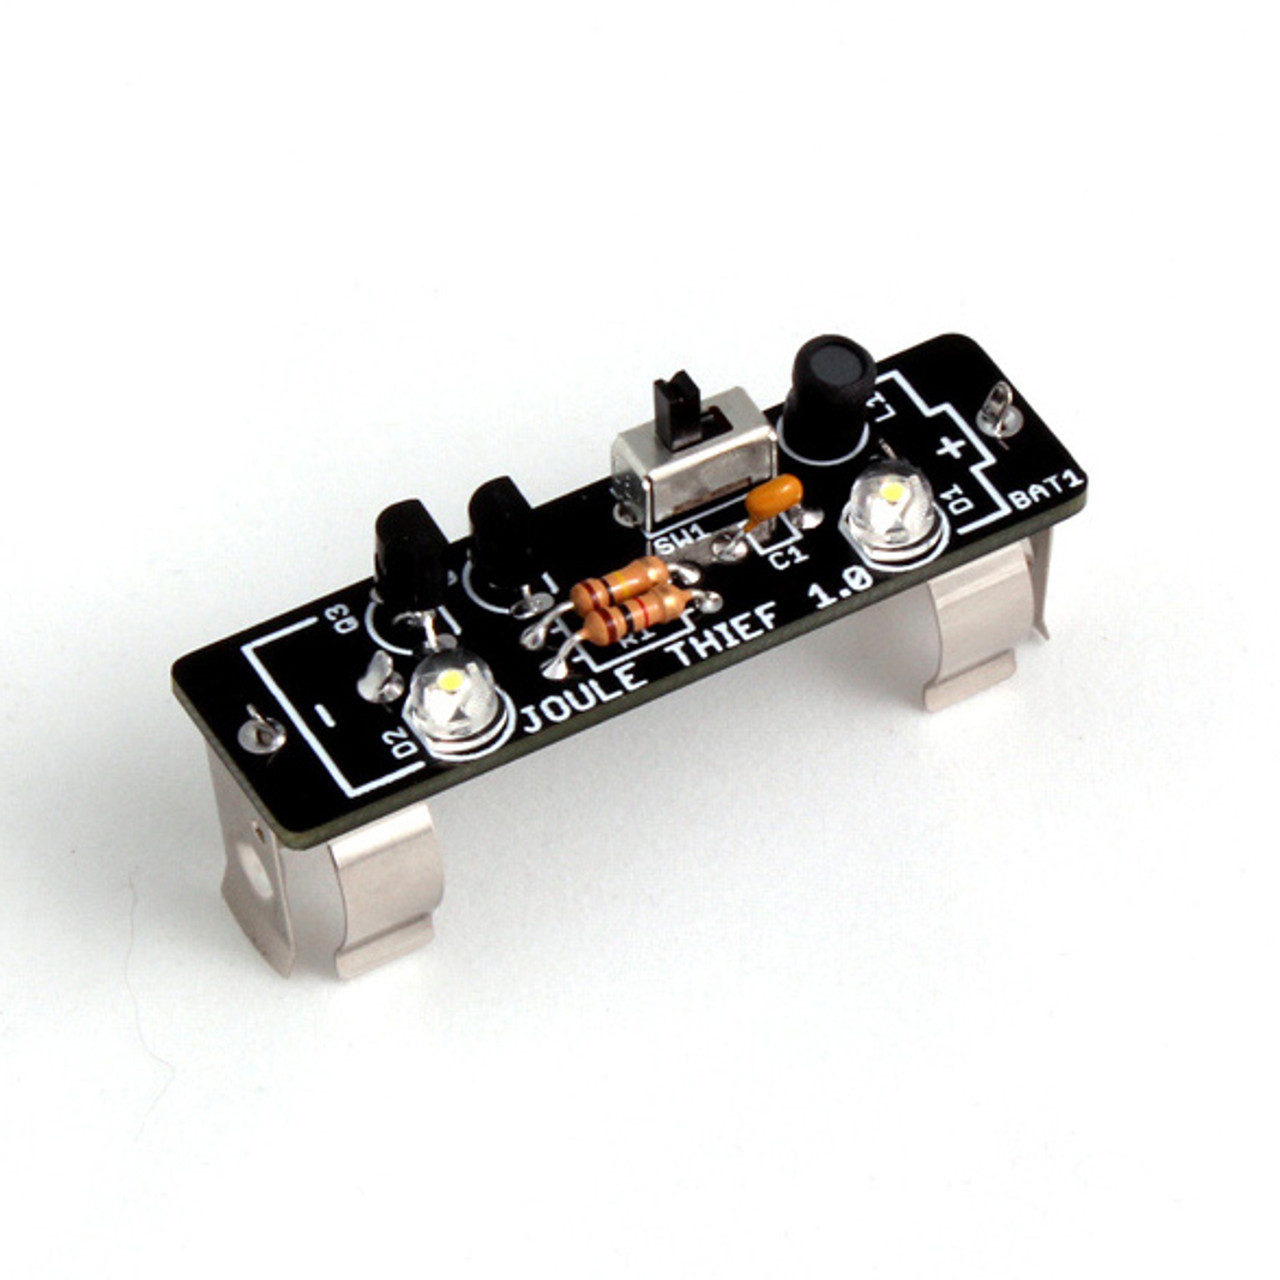 Joule Thief 1.0 LED Kit